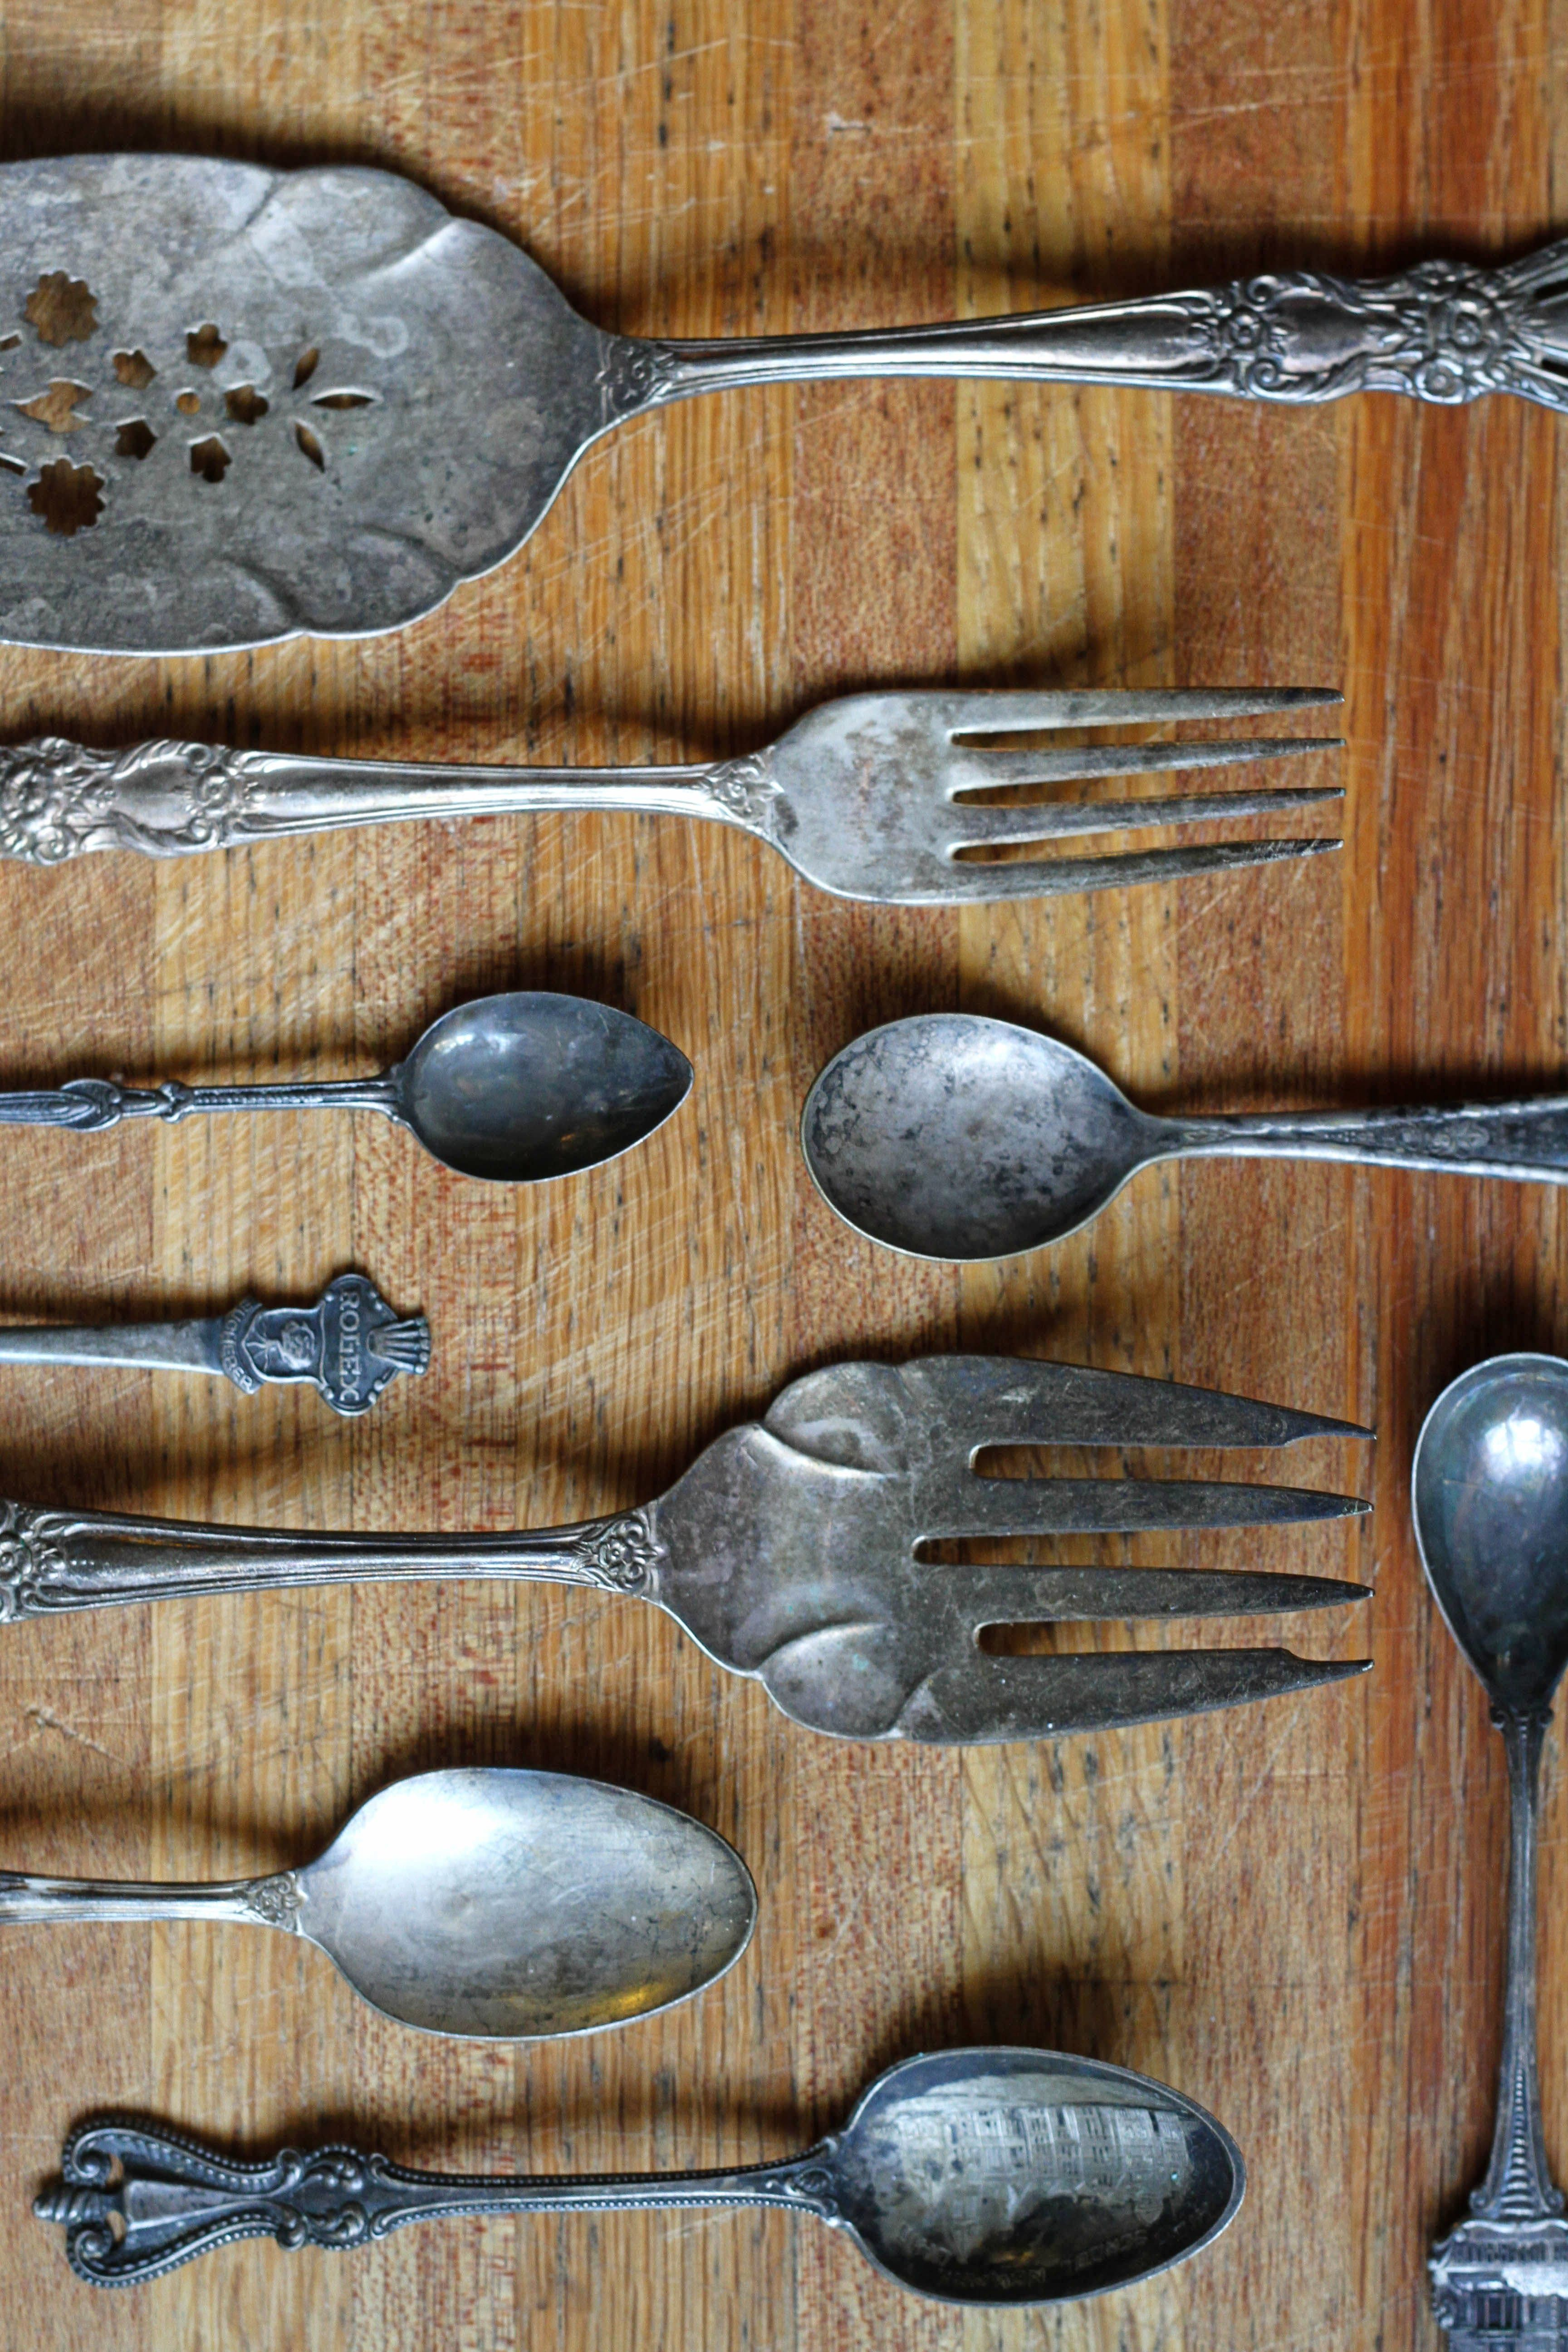 How To Clean Silver With Aluminum Foil & Baking Soda   Baking soda ...